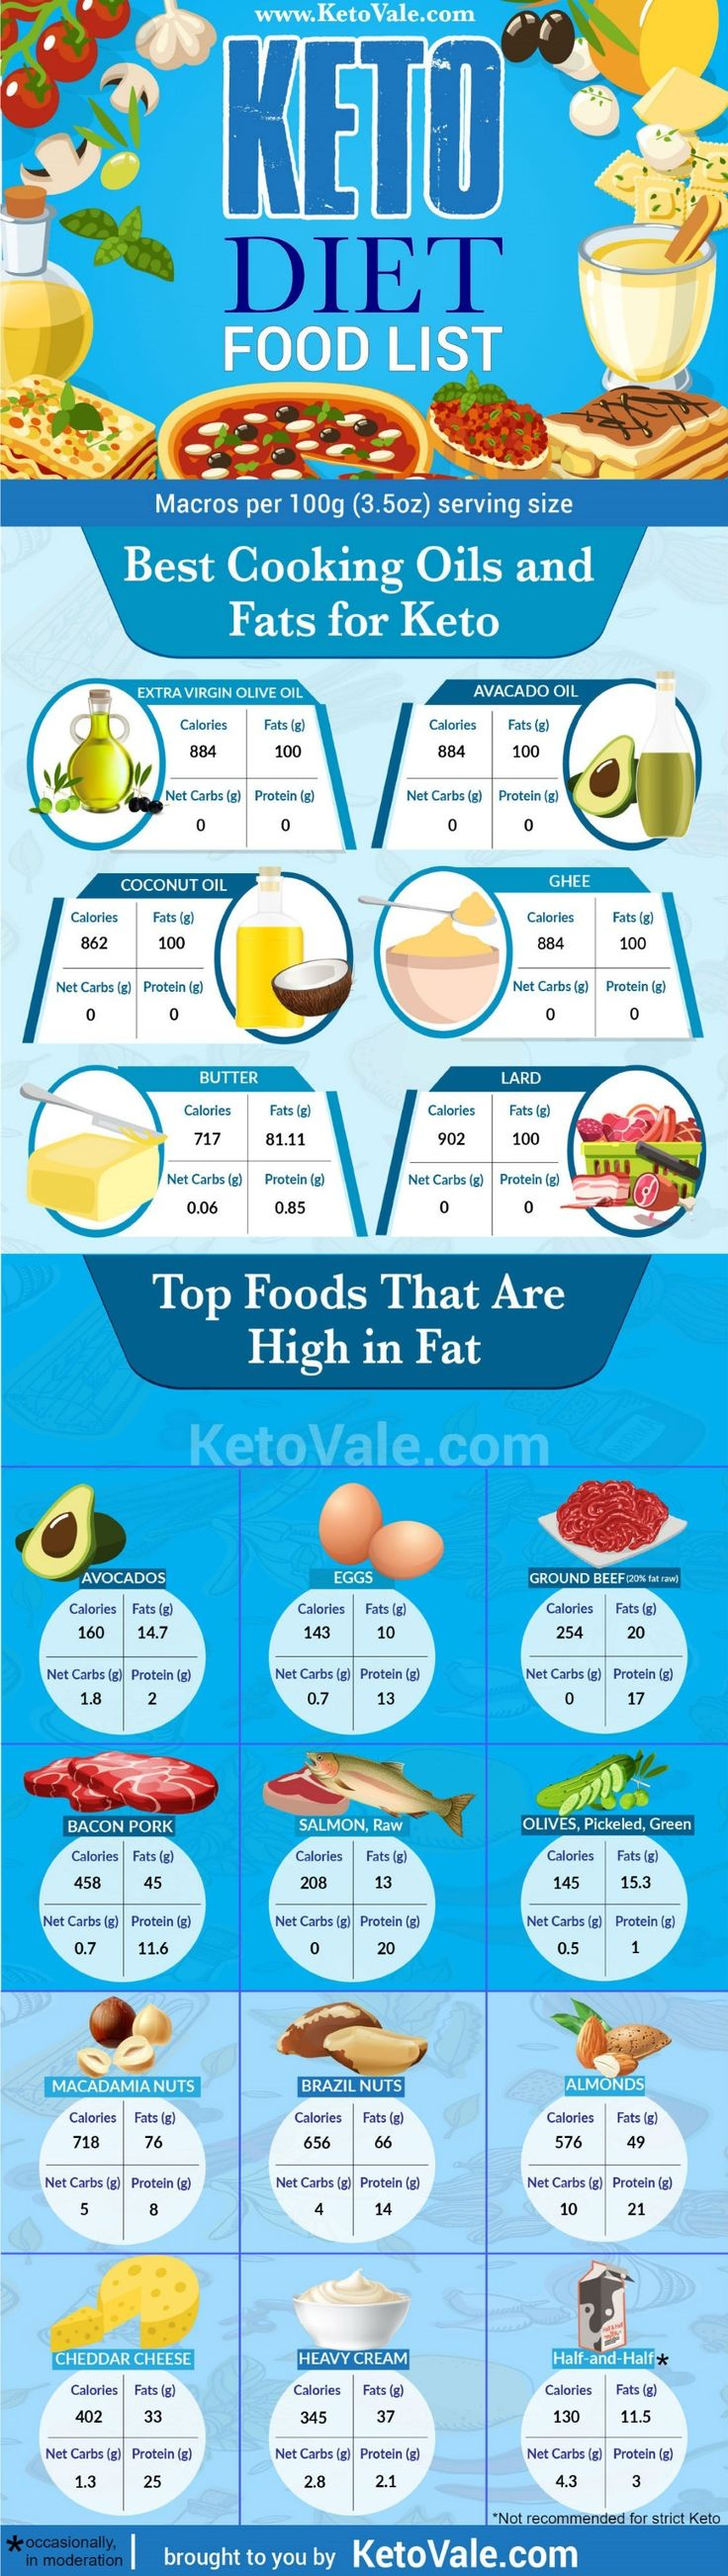 What Are Good Fats on a Low Carb Diet?